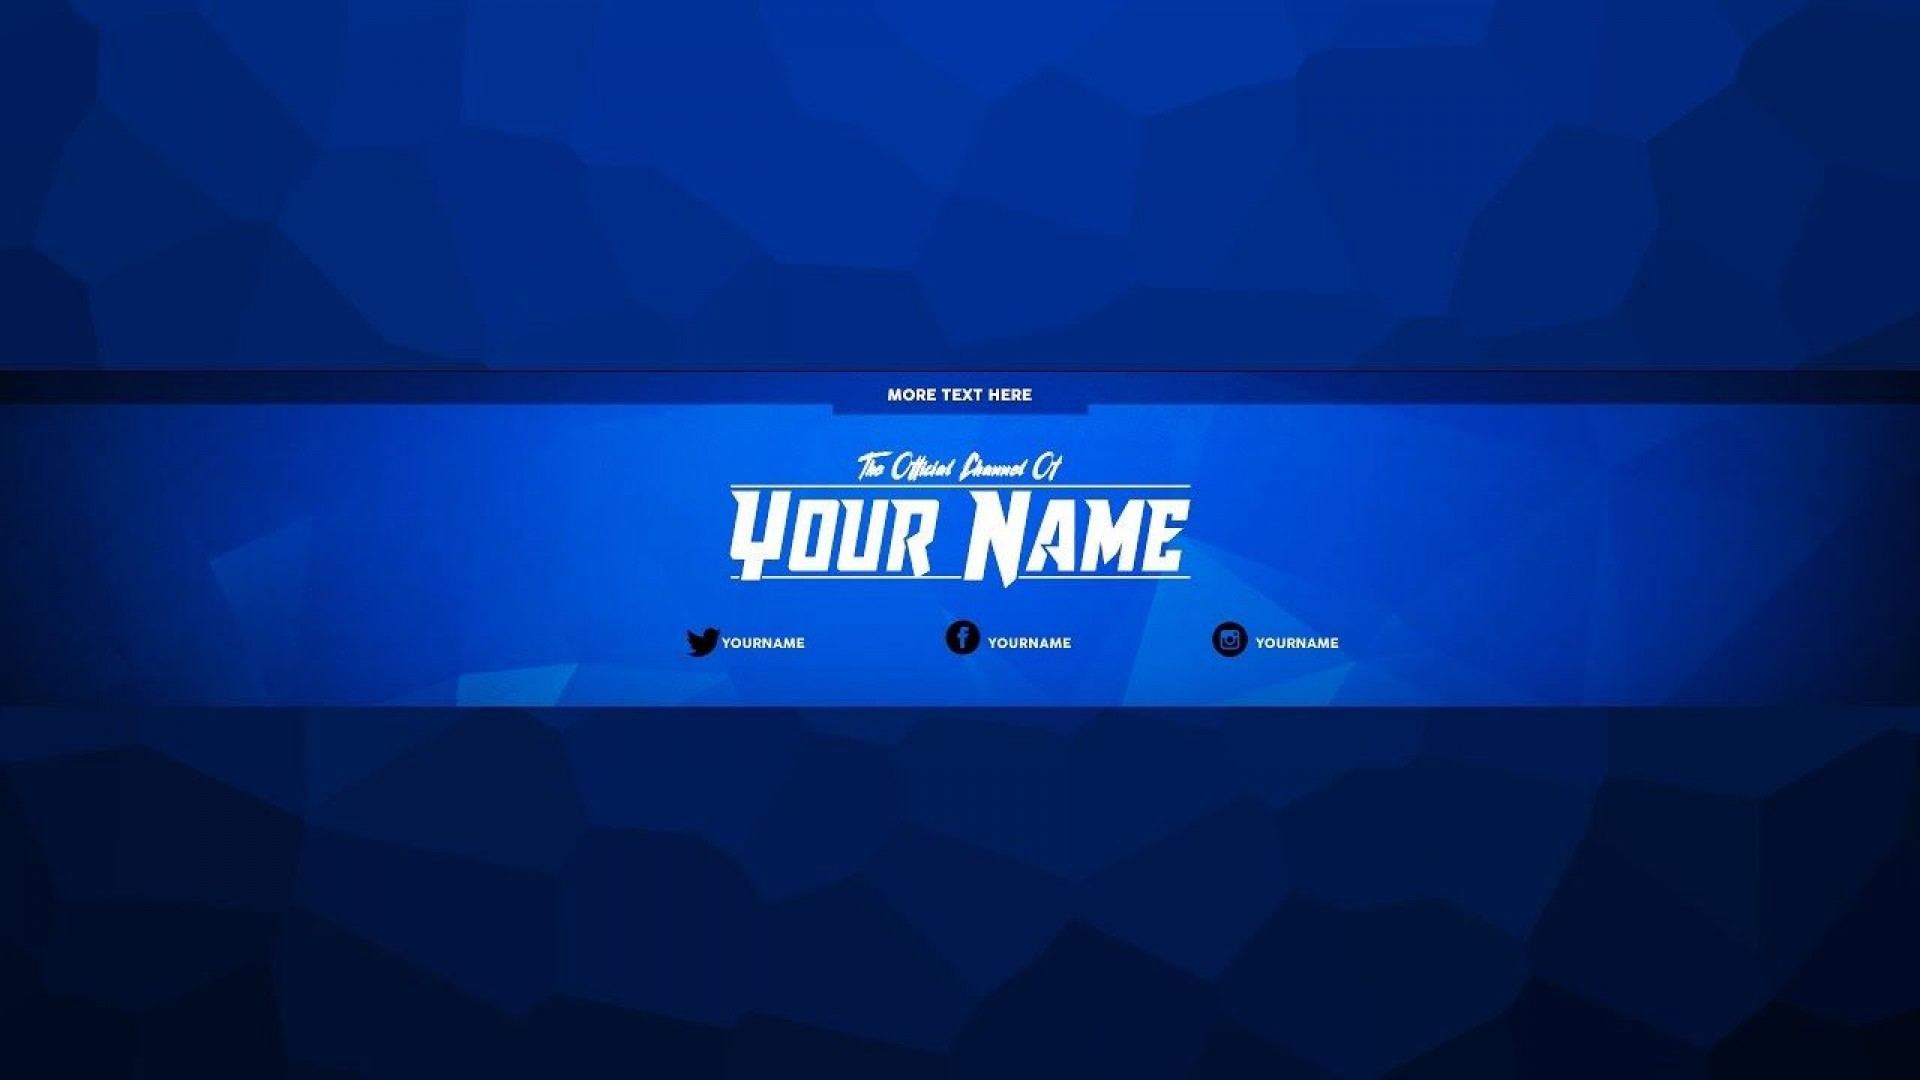 002 Fascinating Free Channel Art Template Design 1920